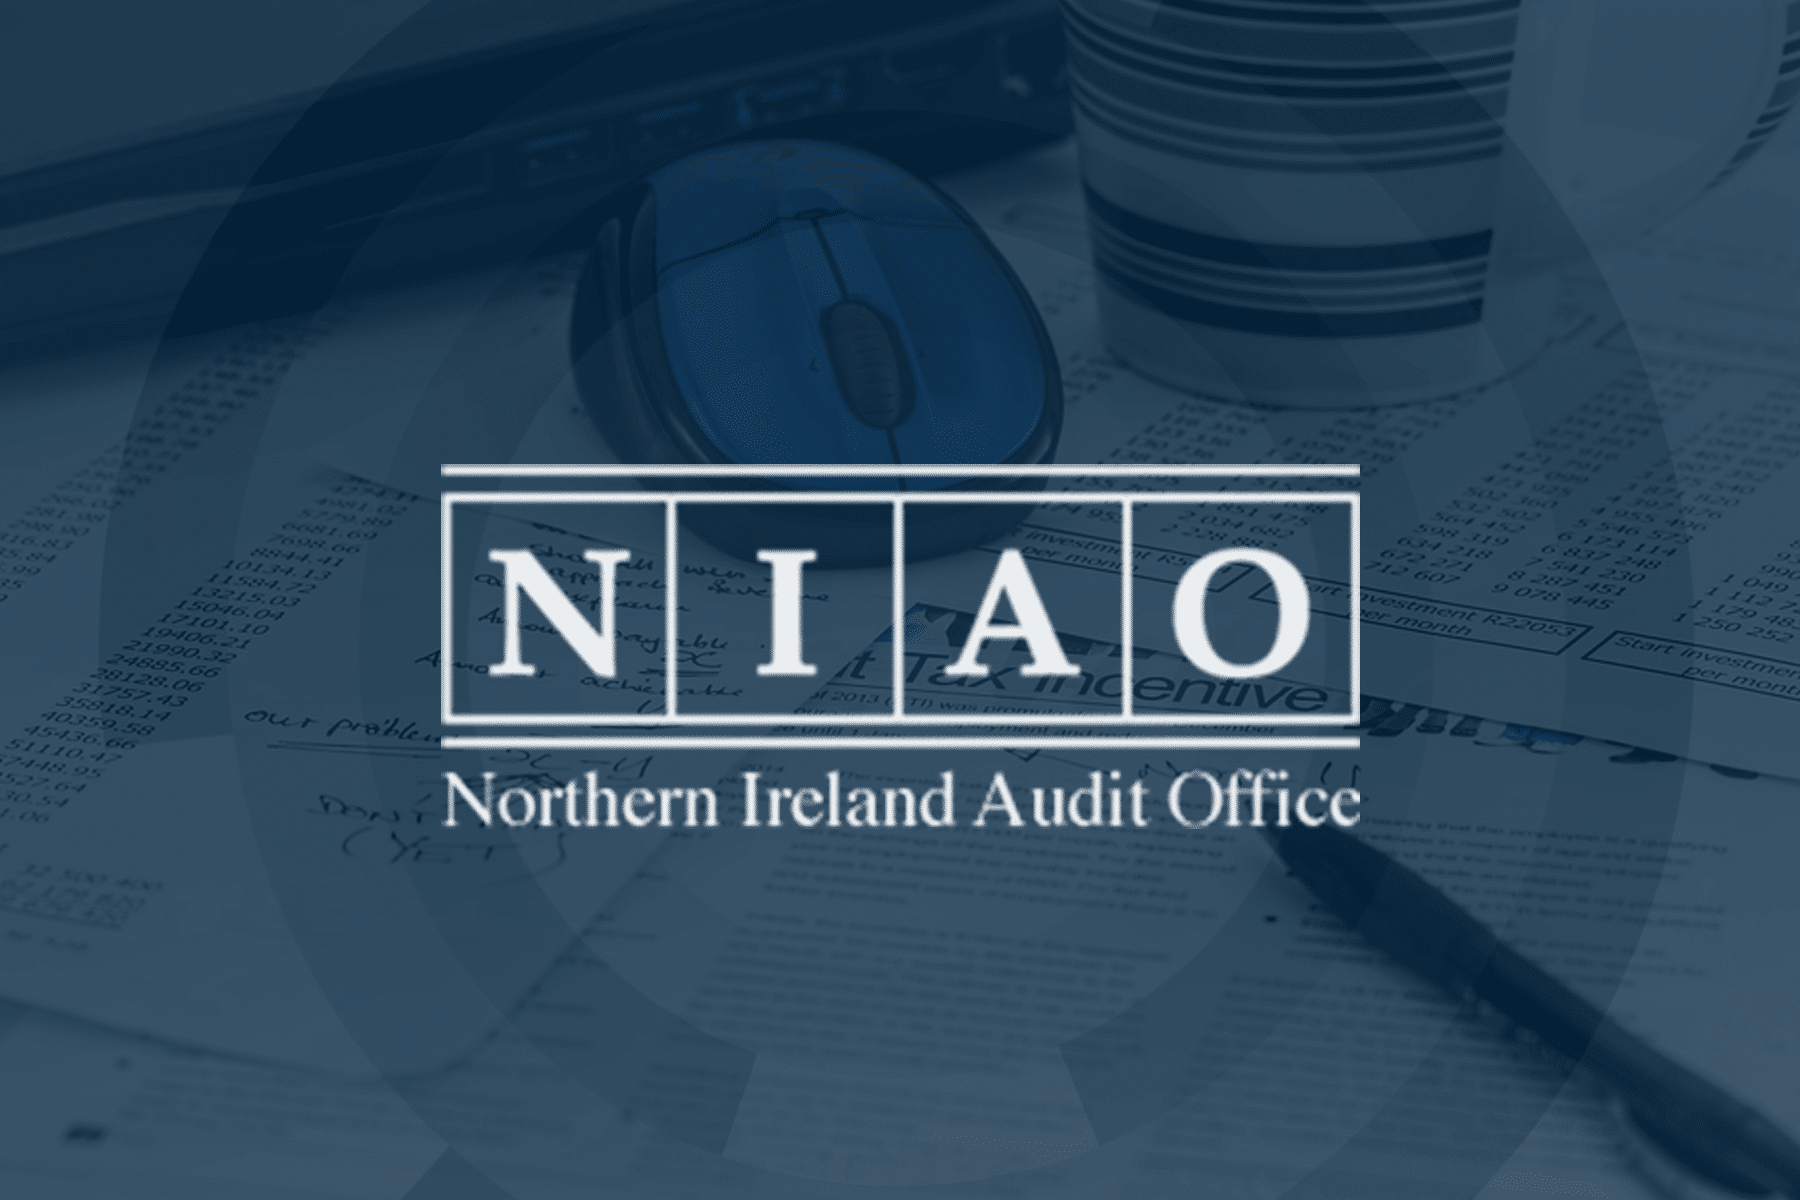 News | Analytics Engines selected for NI Audit Office public sector audit project featured image